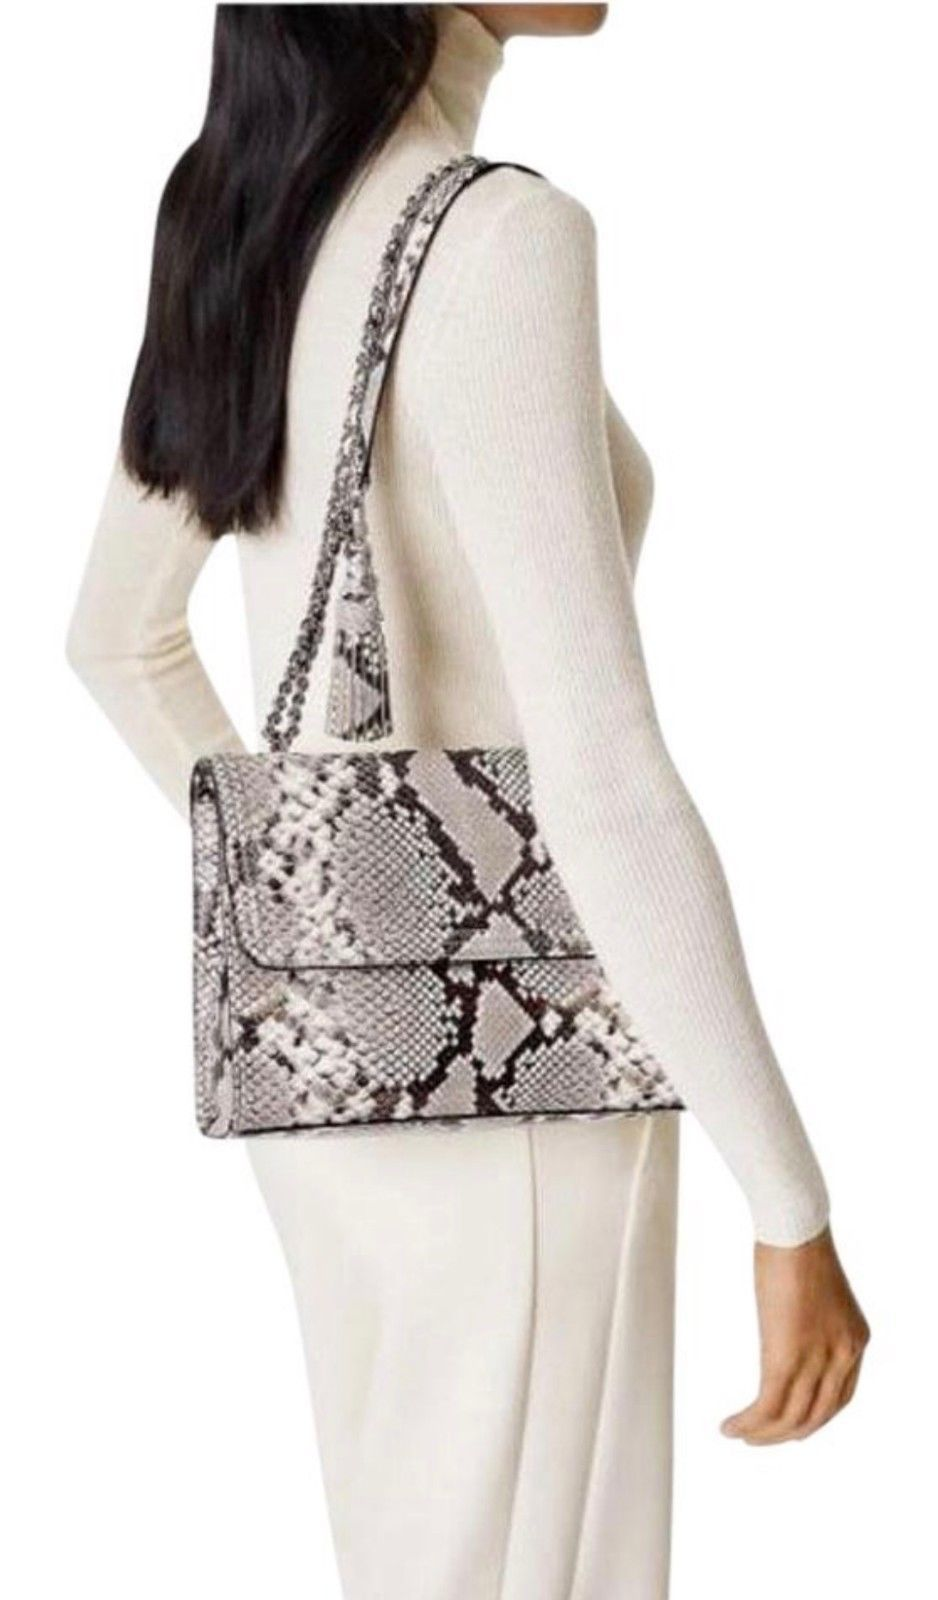 NWT Tory Burch Fleming Embossed Snake Convertible Shoulder Bag New $598 image 4